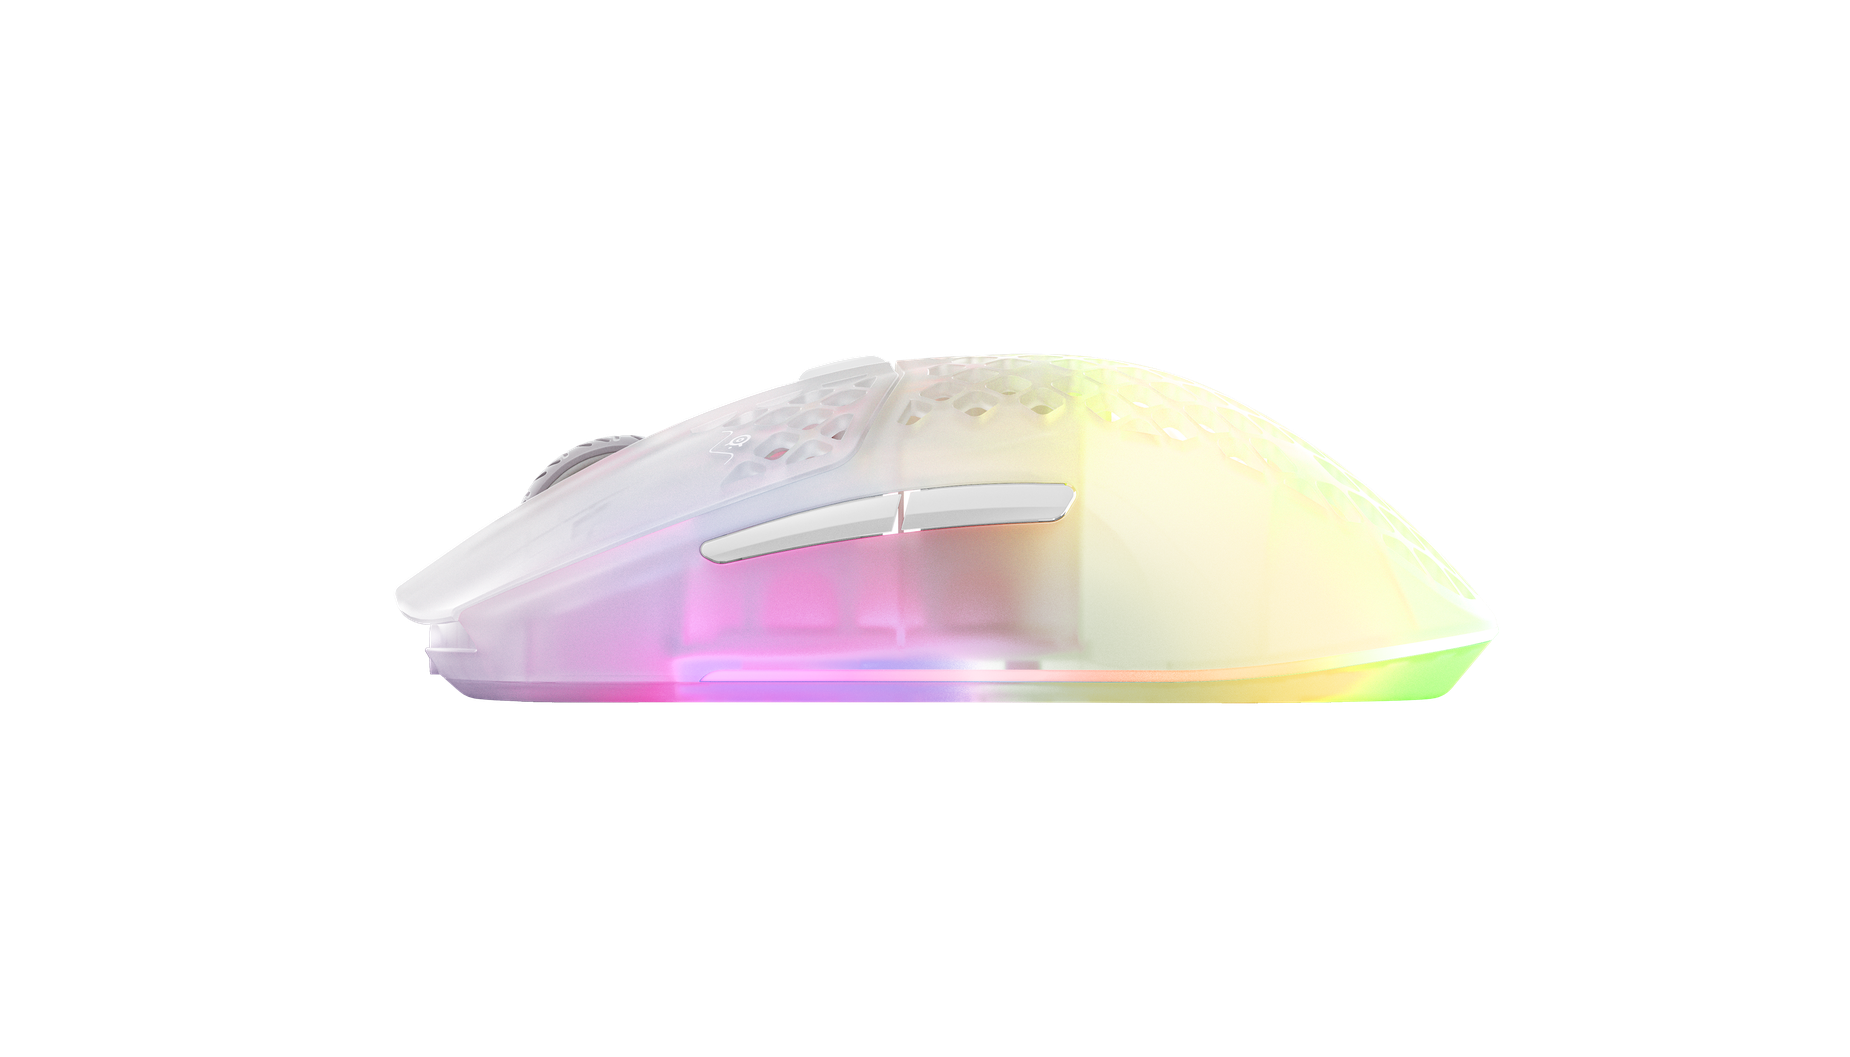 Side view of the Aerox 3 Wireless ghost mouse, showing off the clear design with vibrant rgb shining through.